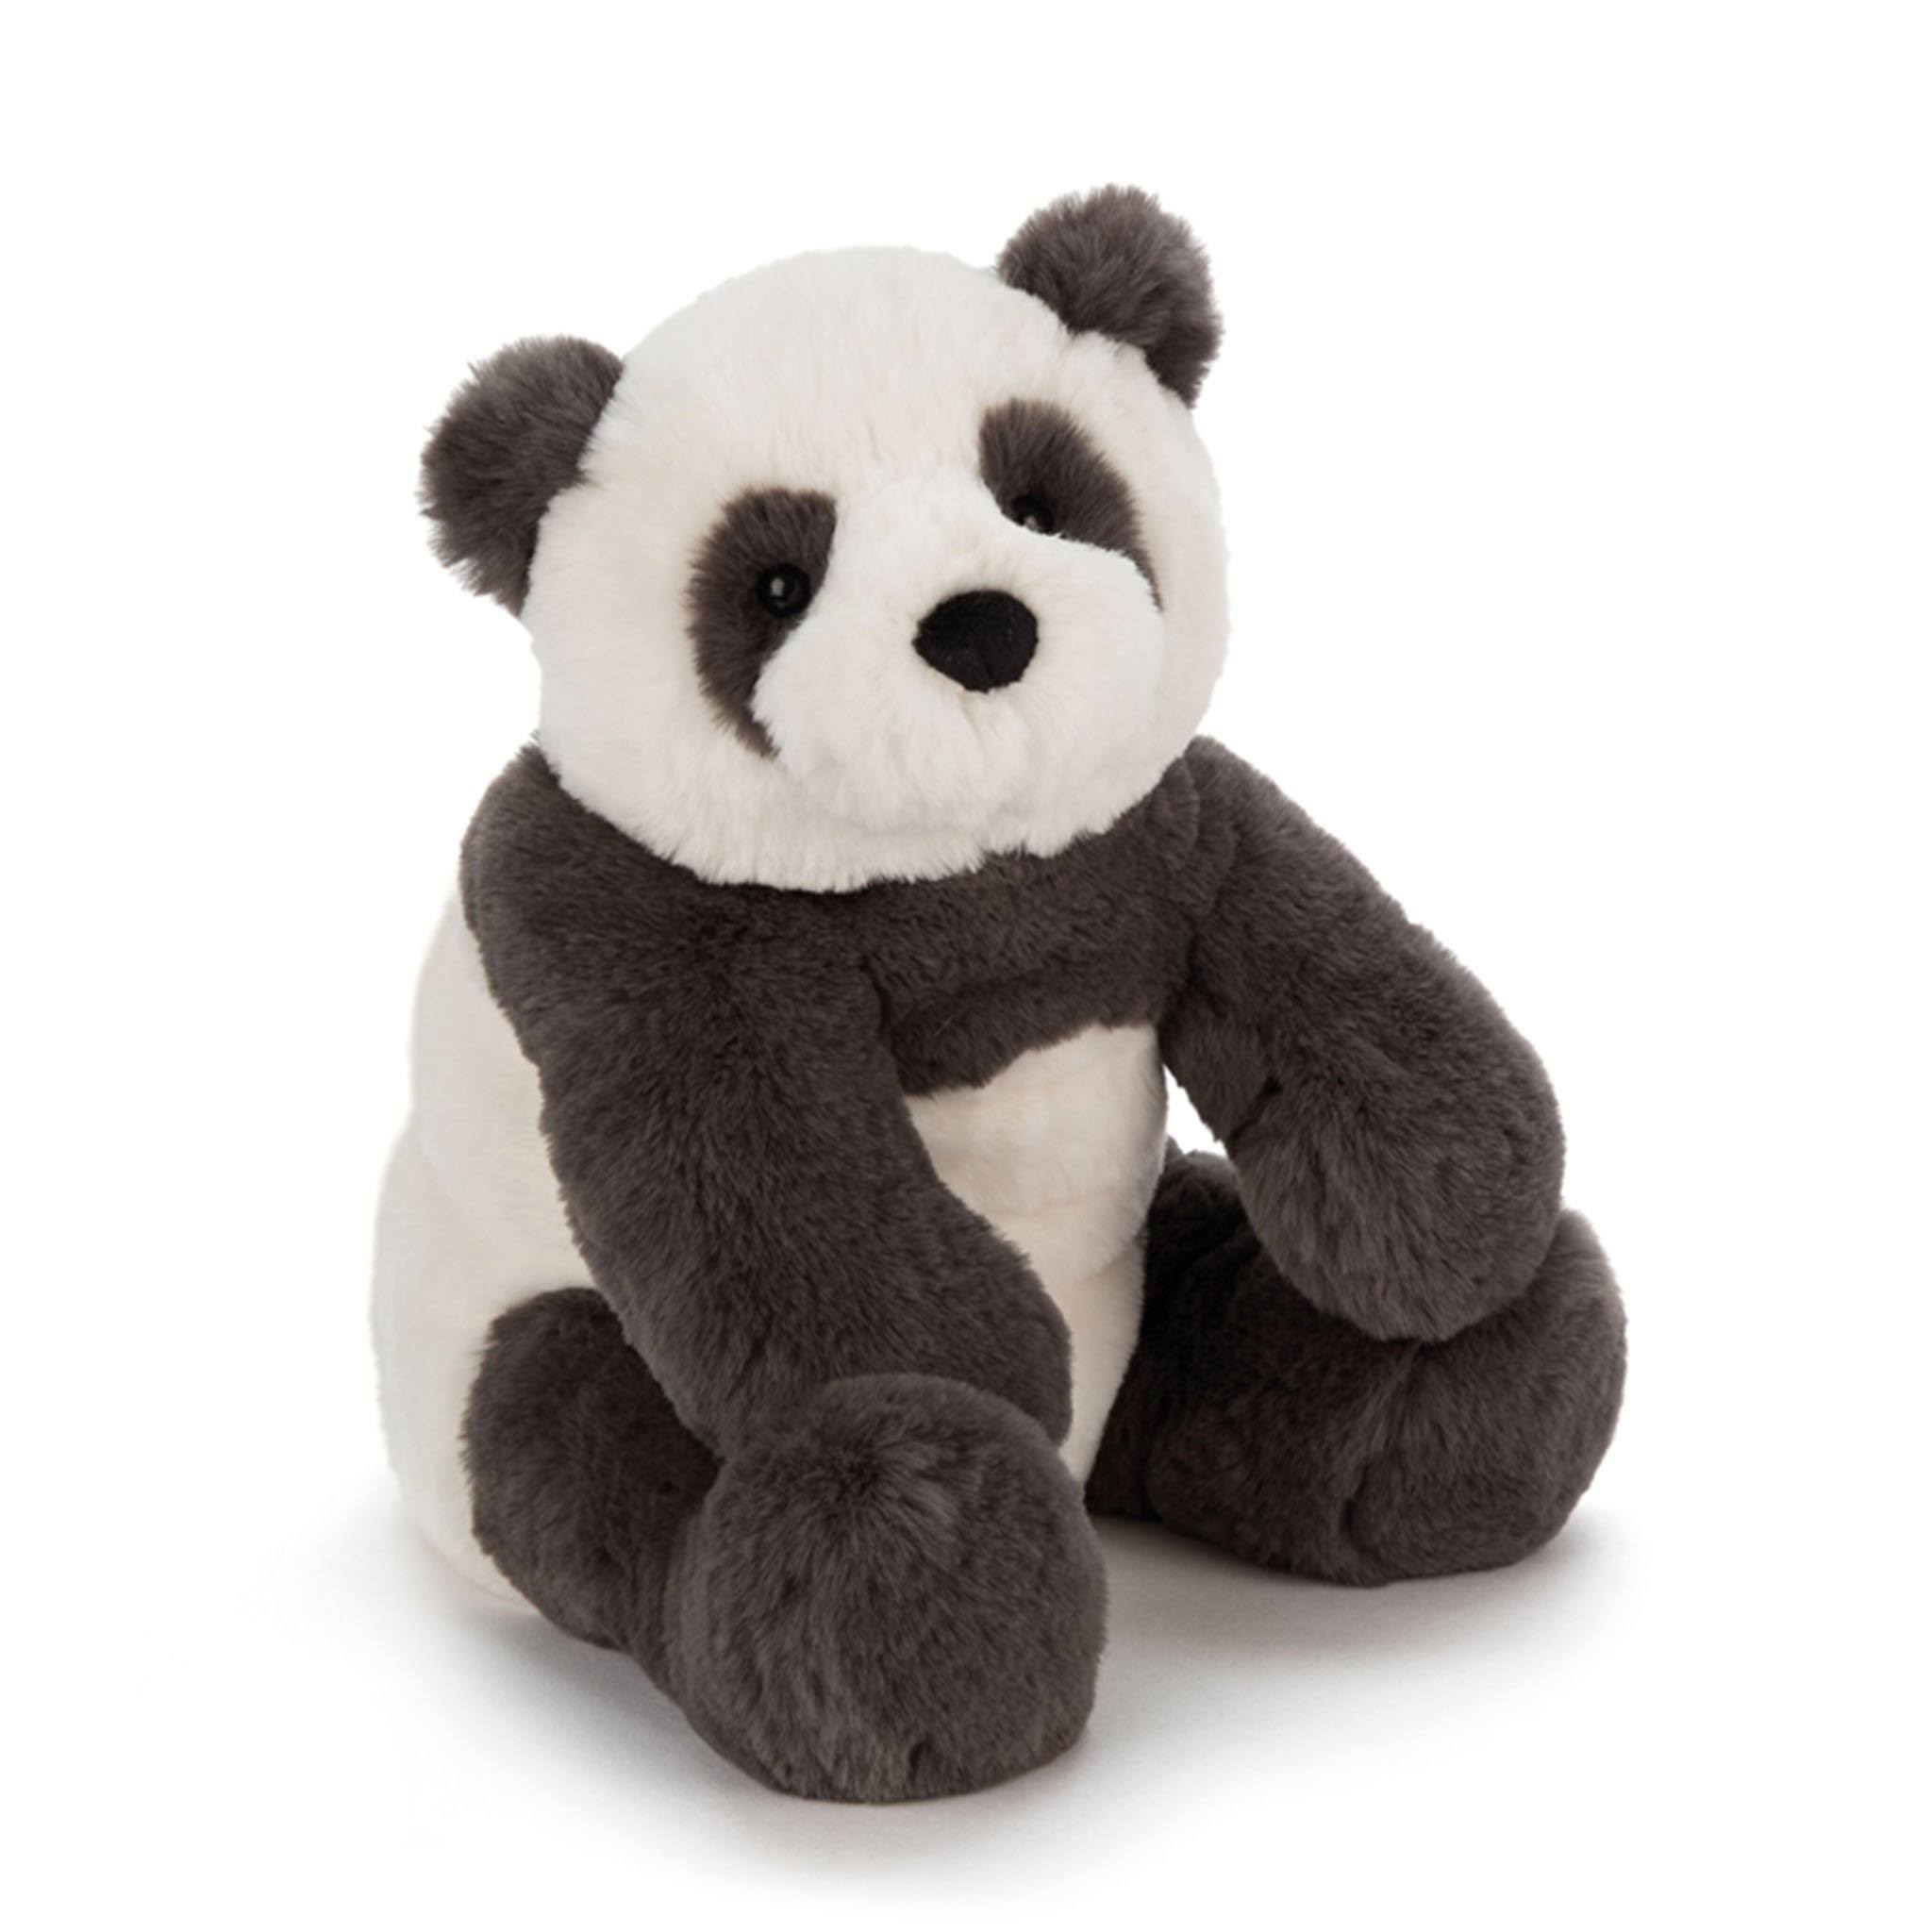 Jellycat Hug Panda Soft Toy - Harry Panda Cub, Large